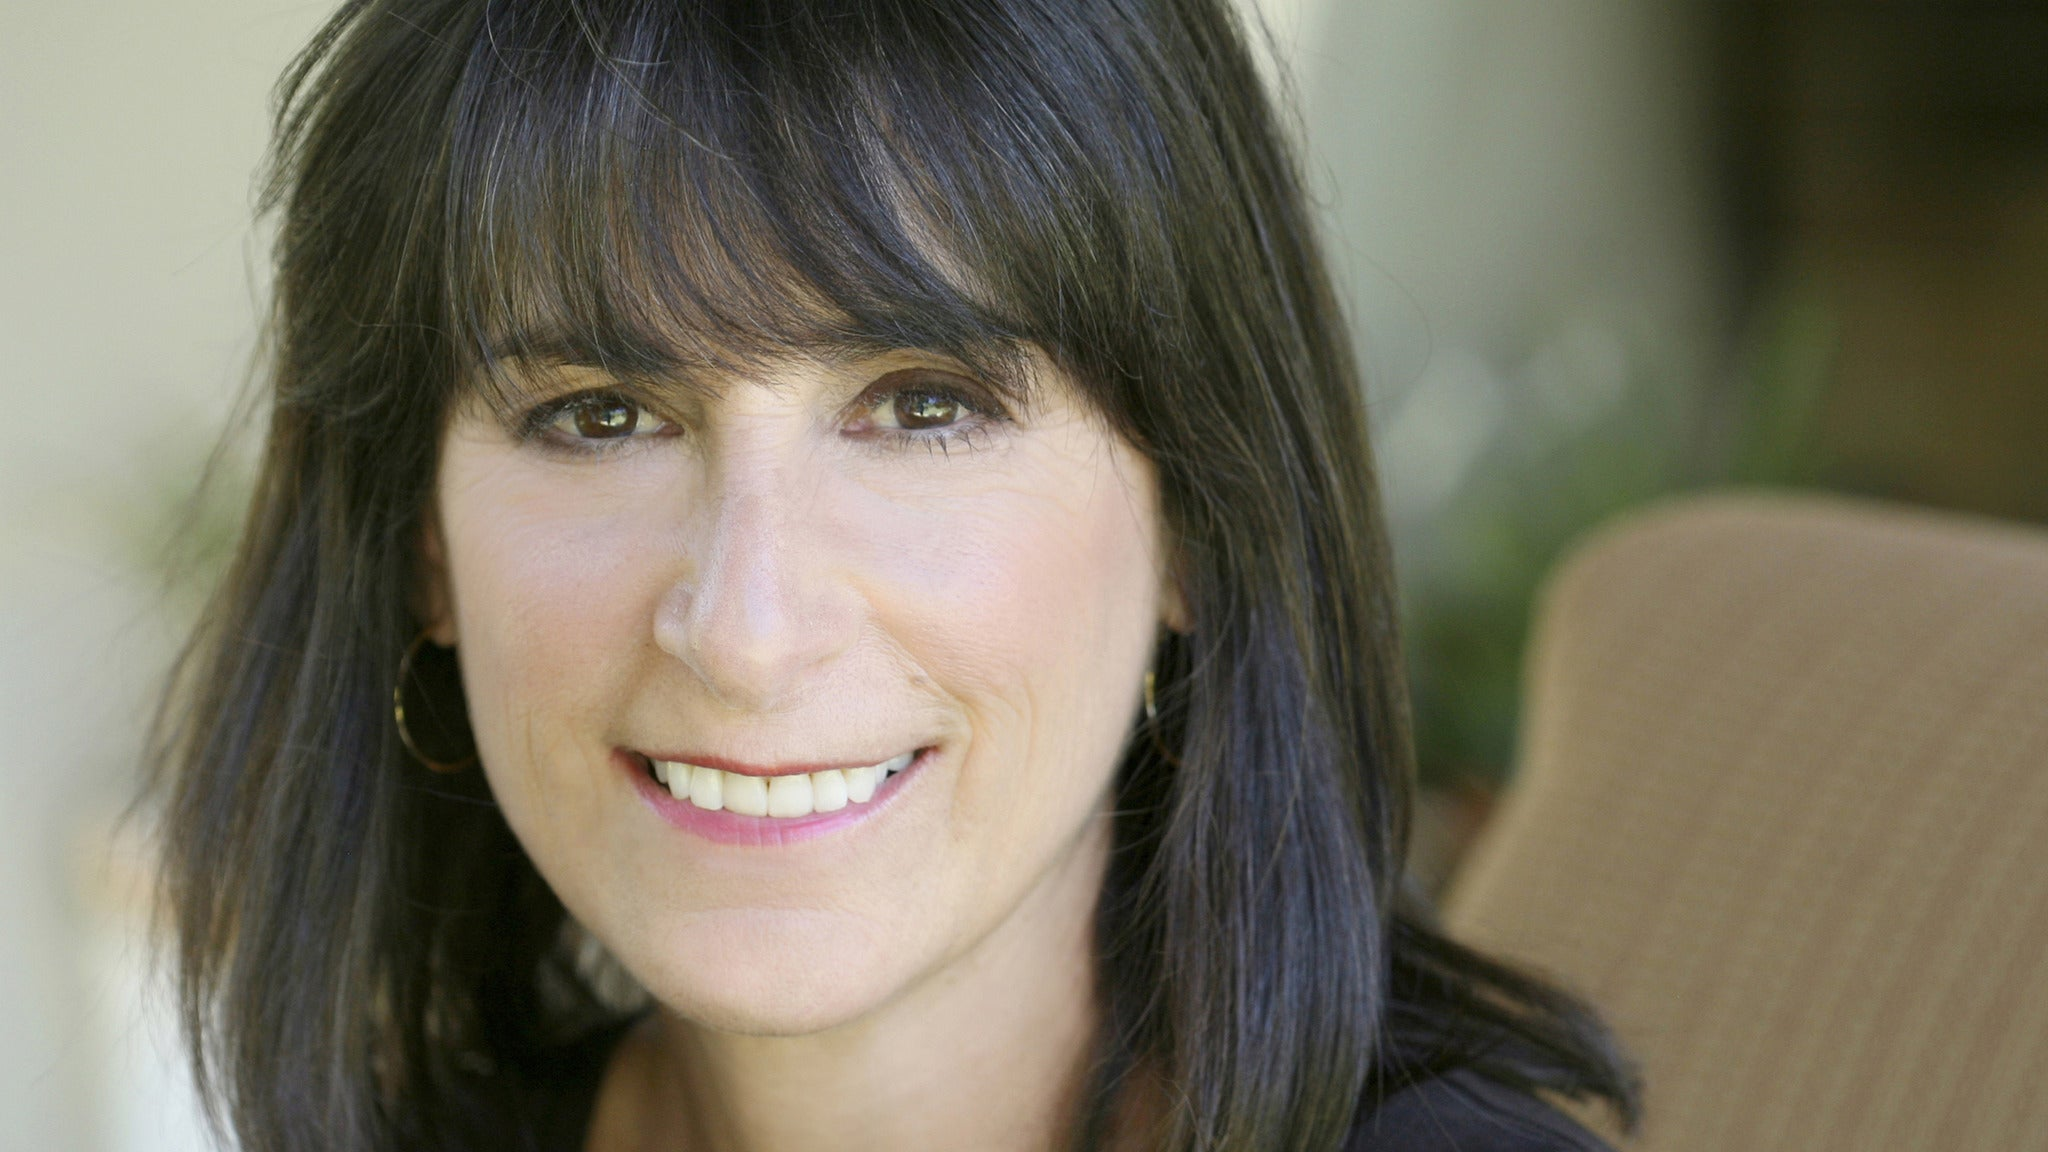 Civic Arts Plaza presents KARLA BONOFF